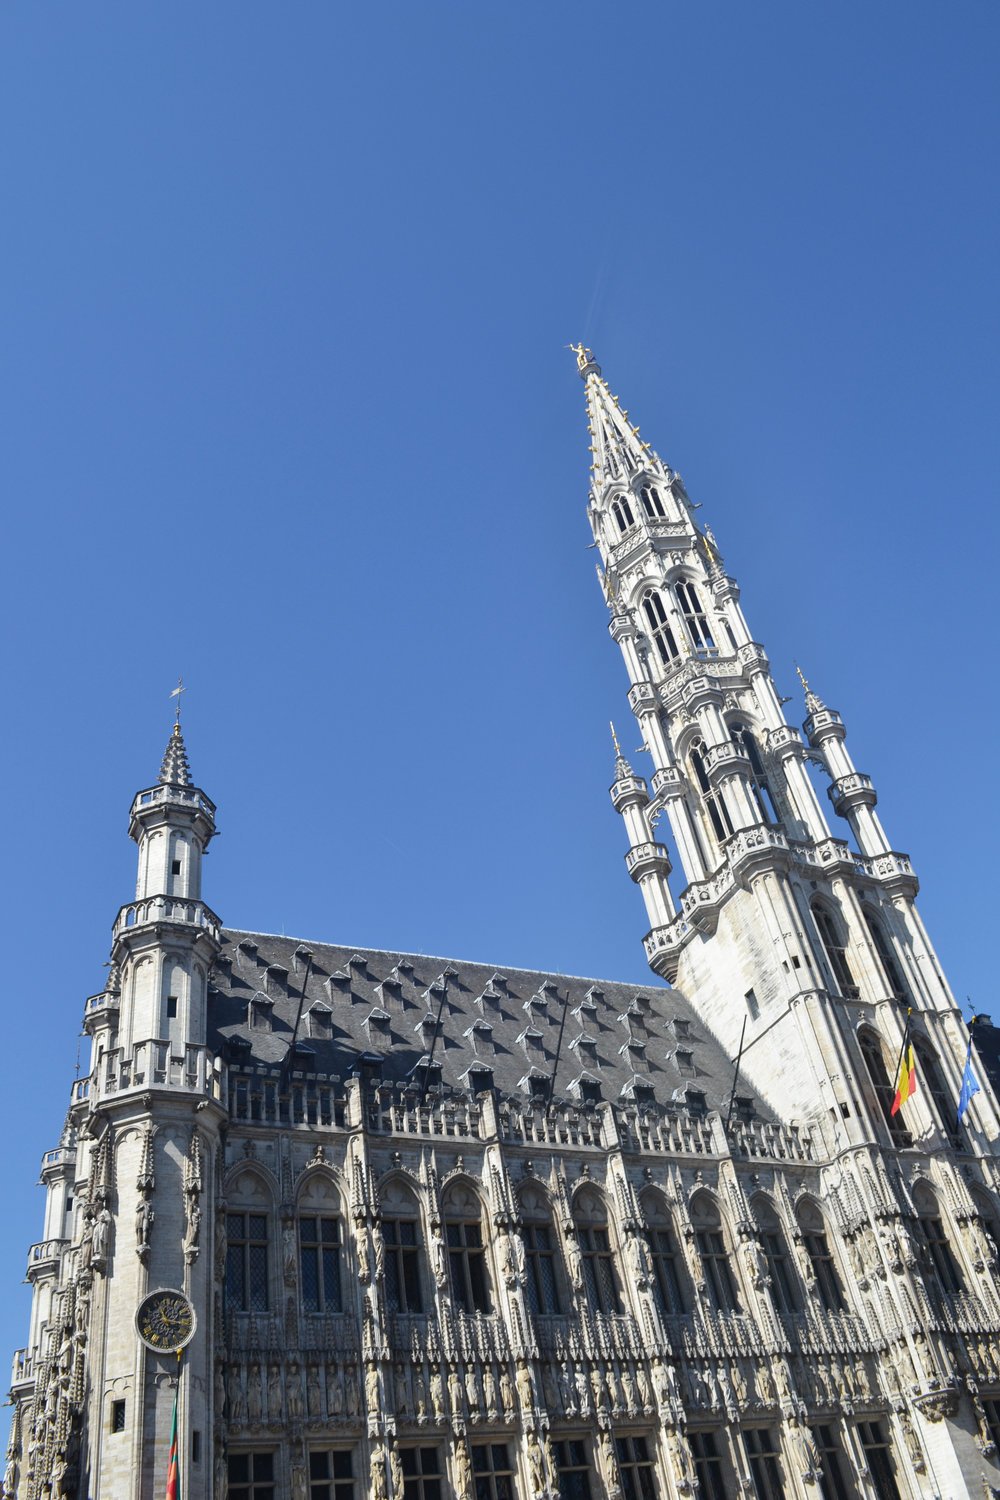 Brussels' Gothic Town Hall, completed in 1420